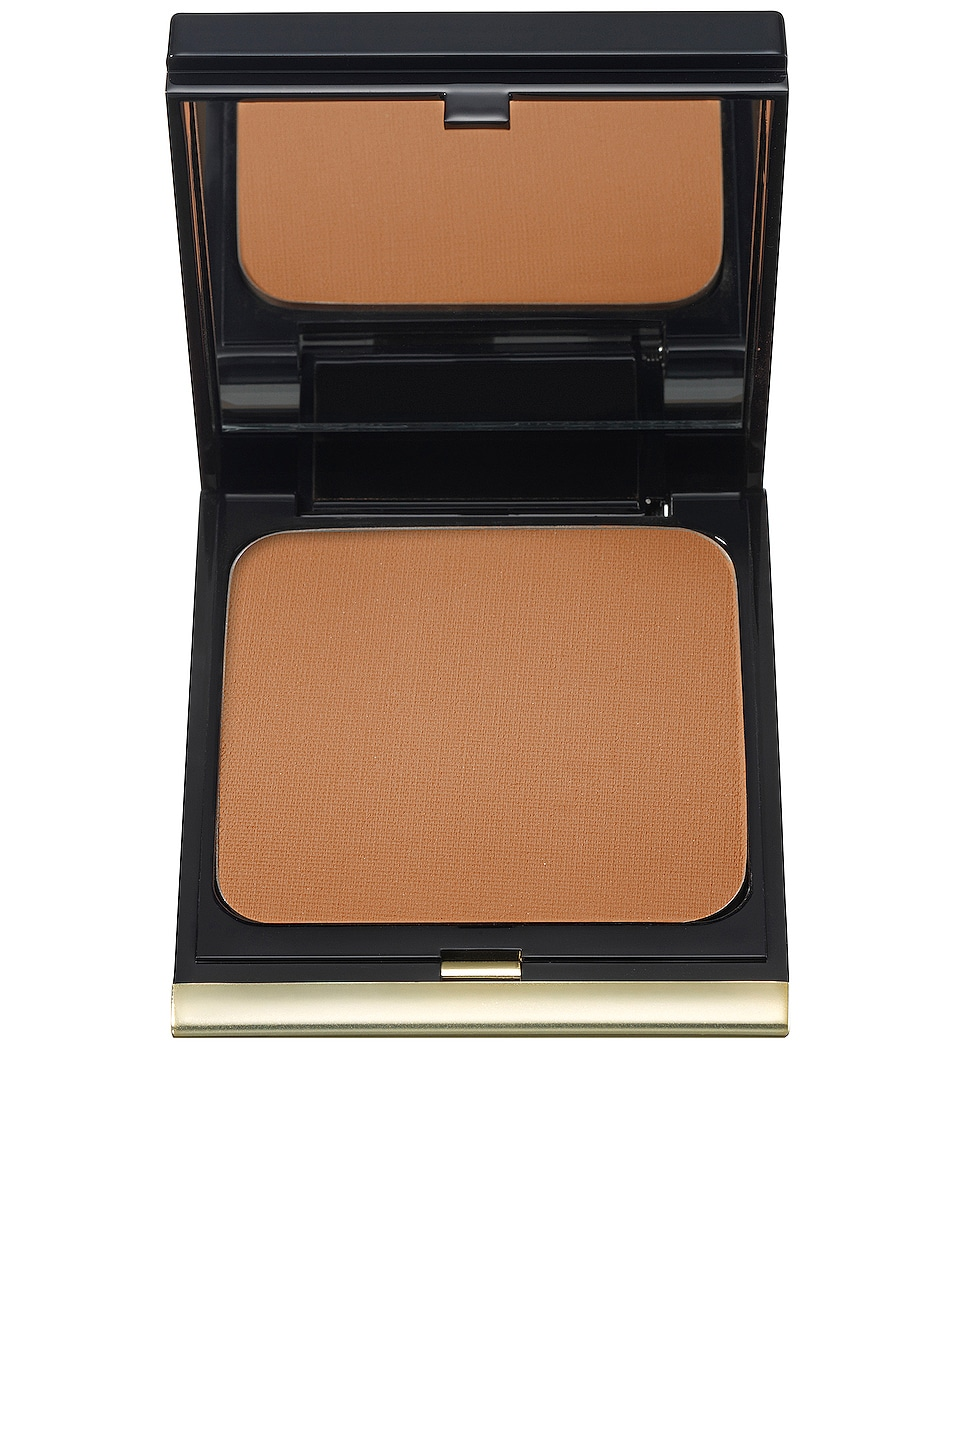 Kevyn Aucoin The Sensual Skin Powder Foundation in Deep 10